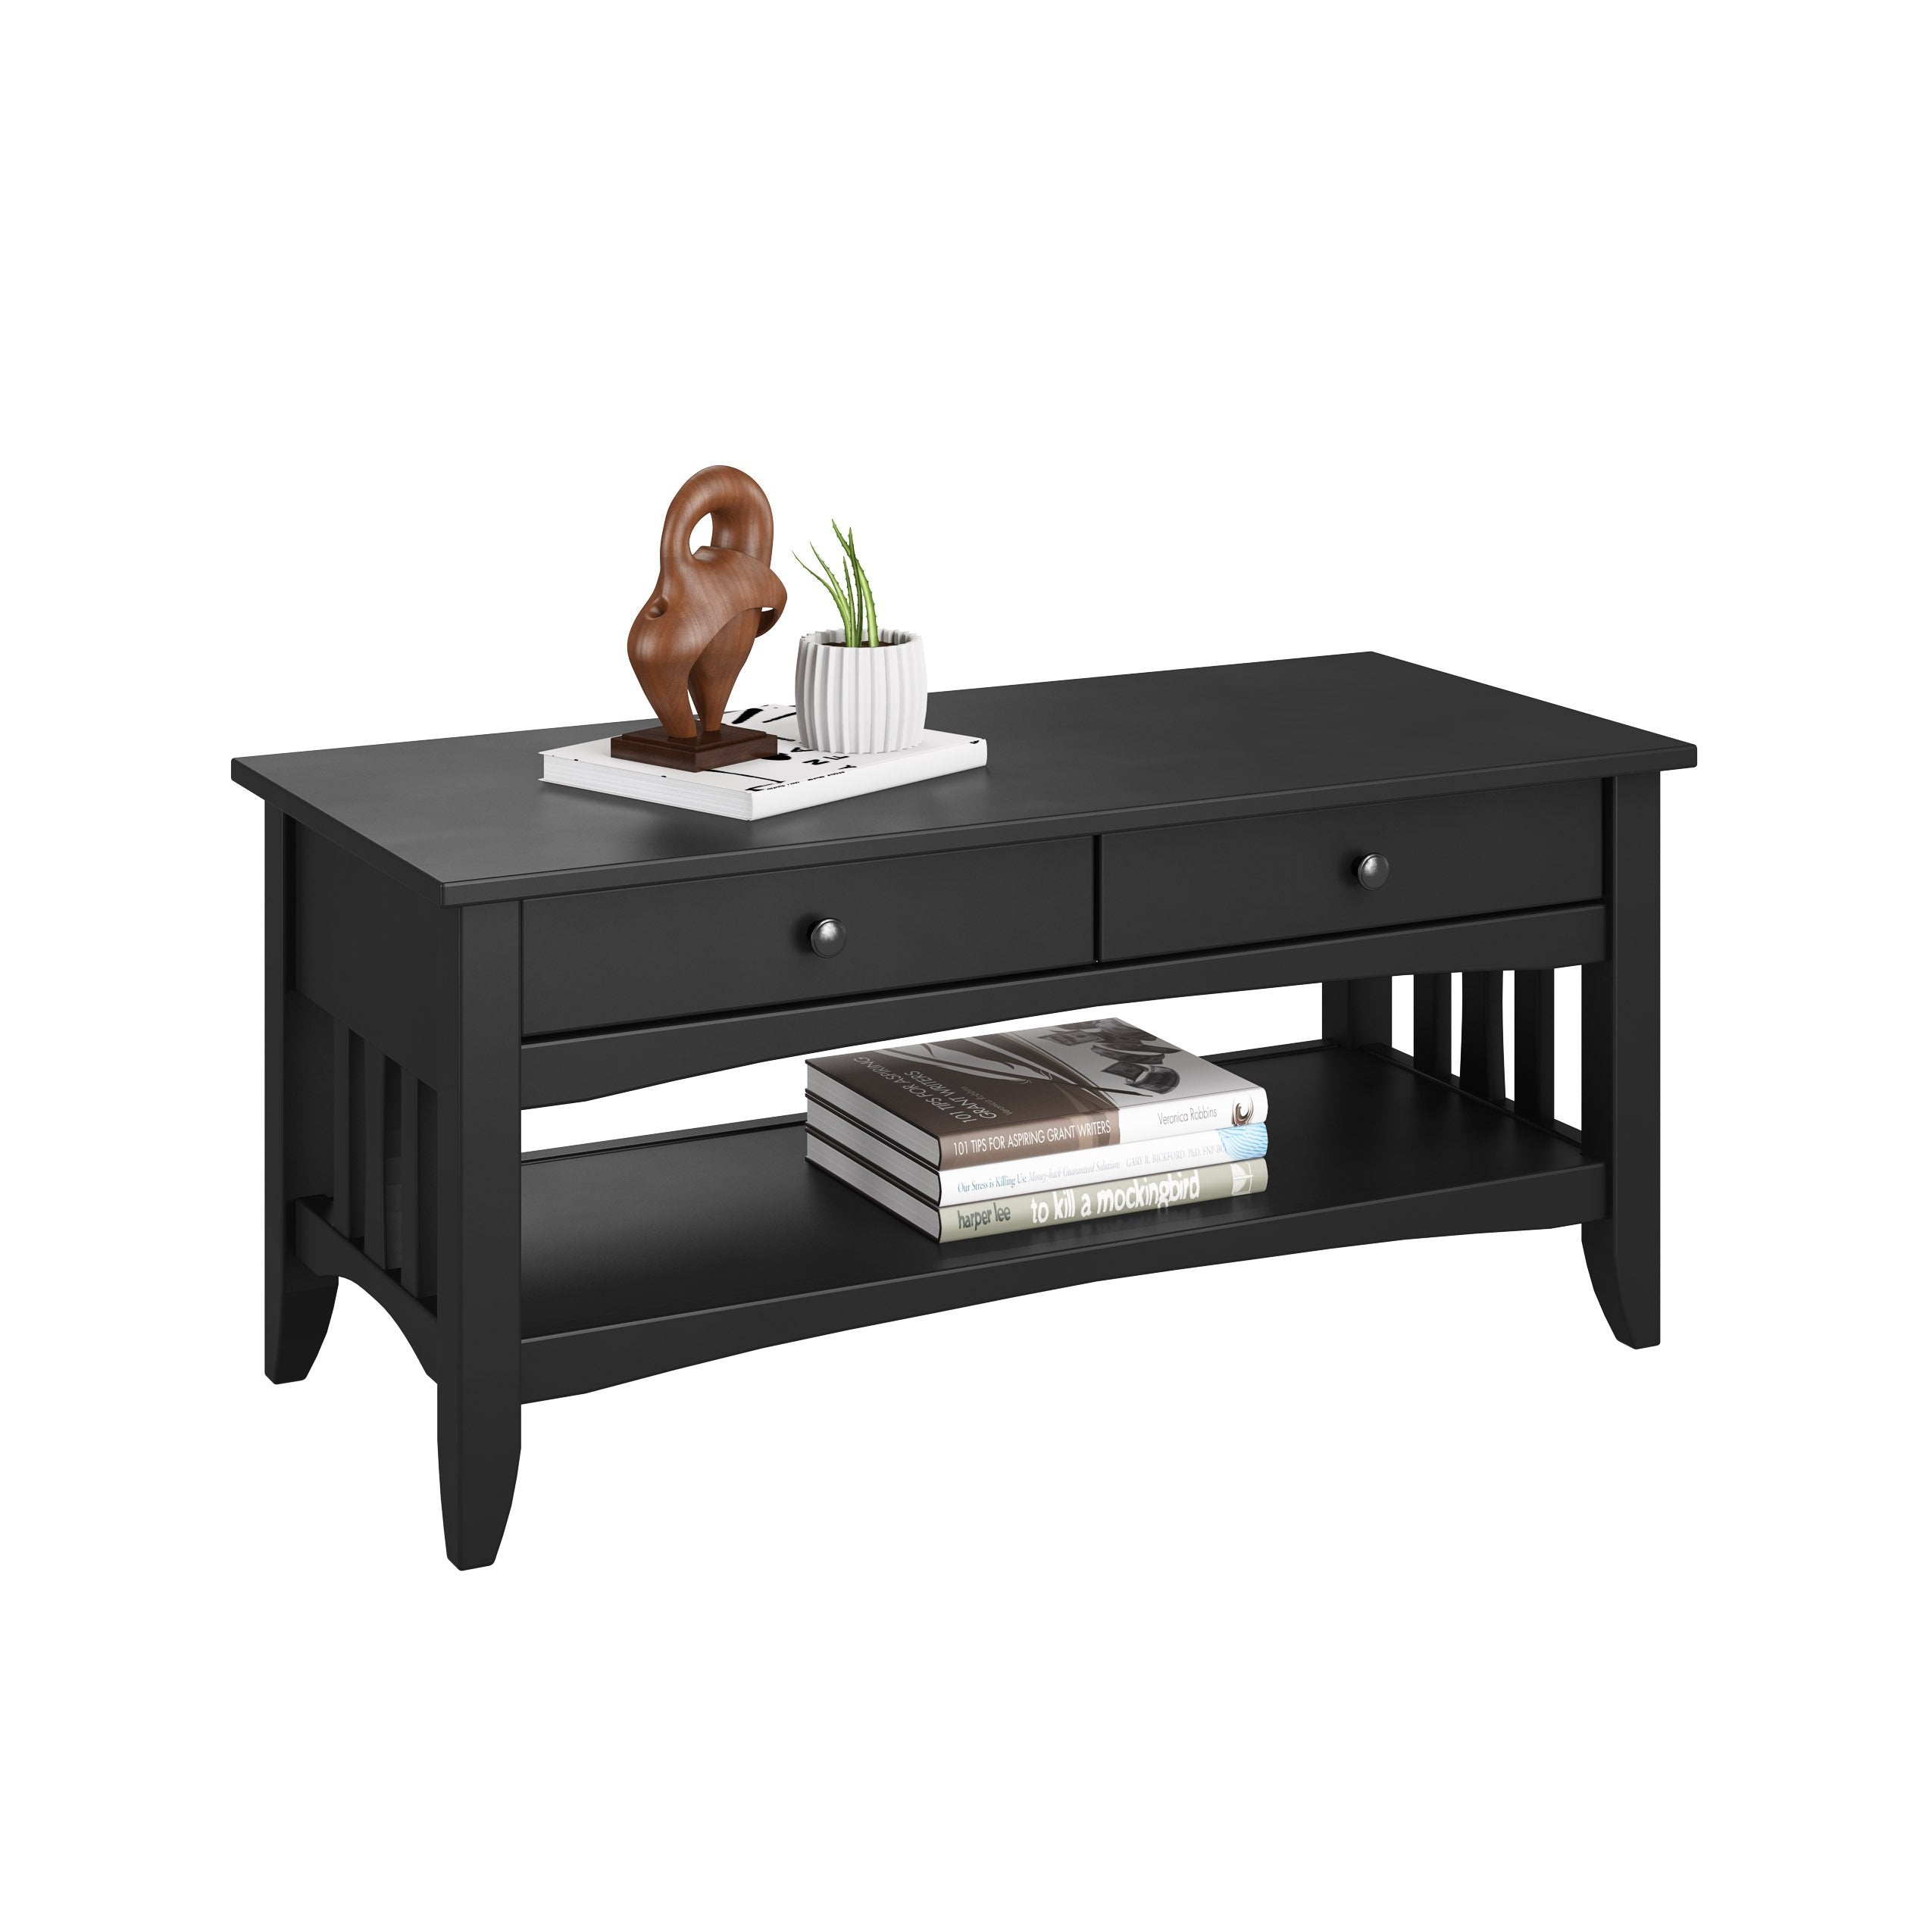 Magnificent Coffee Table With Drawers Clearance Pabps2019 Chair Design Images Pabps2019Com